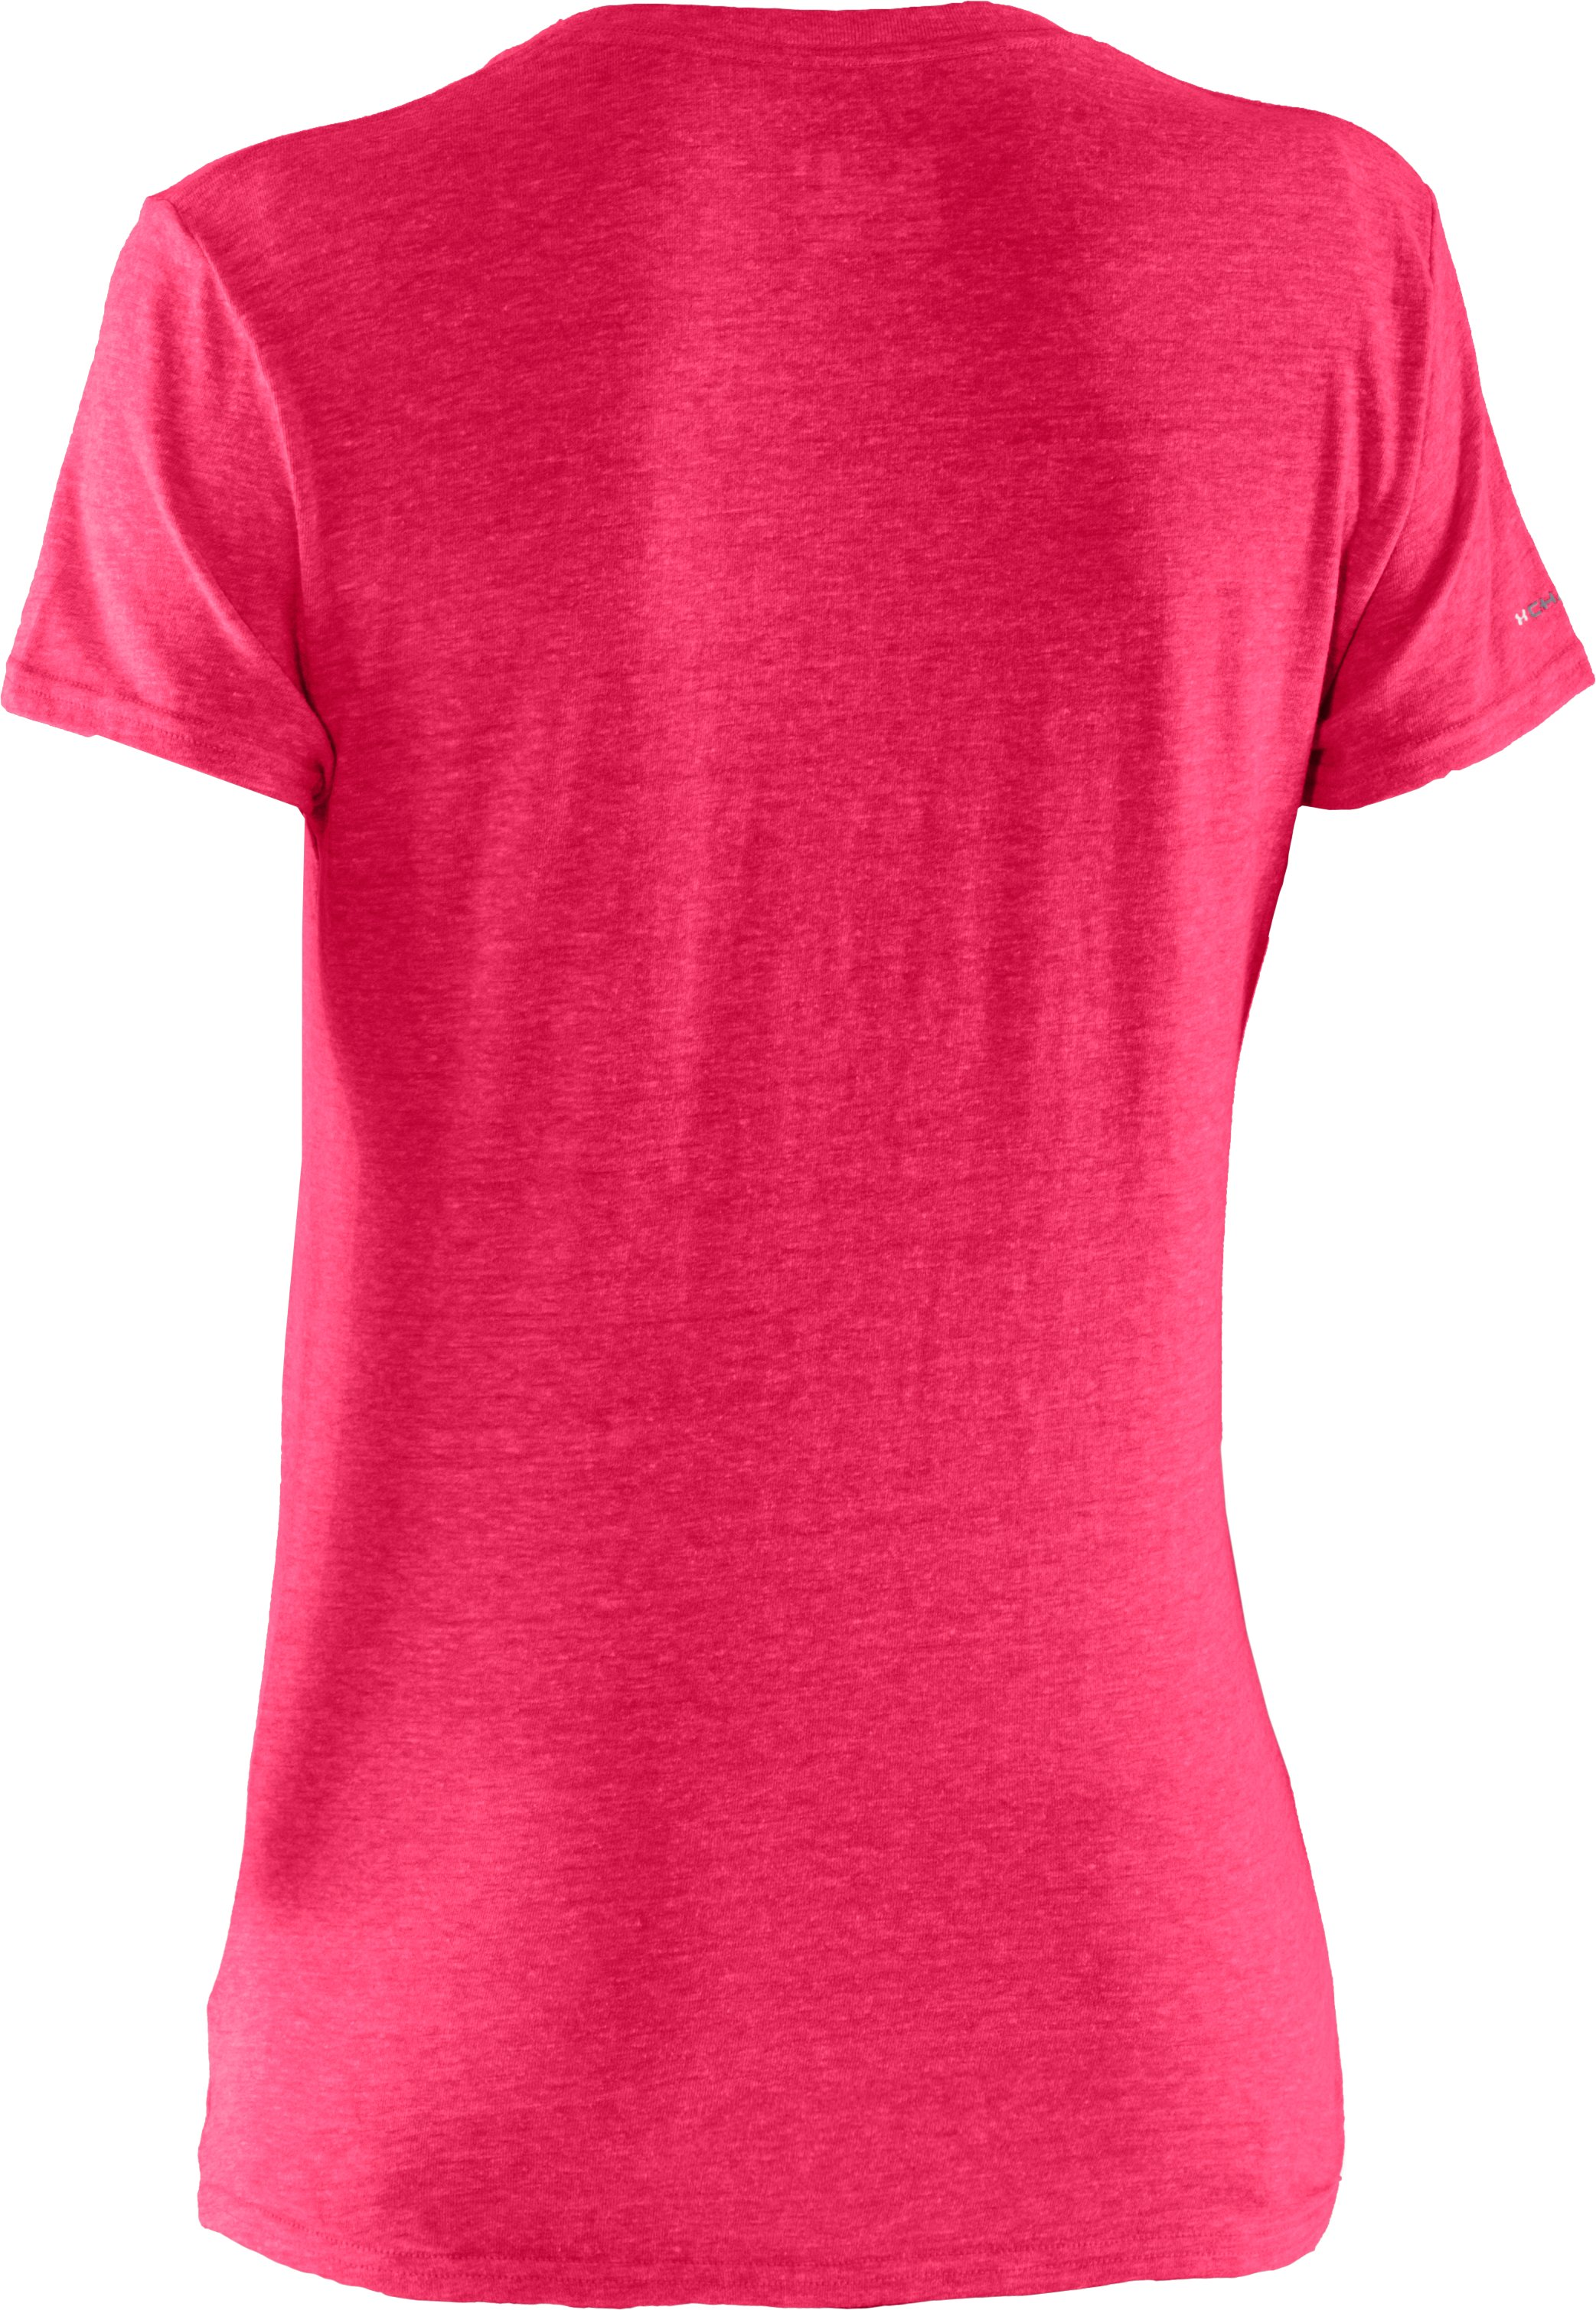 Women's Charged Cotton® Undeniable T-Shirt, KNOCK OUT